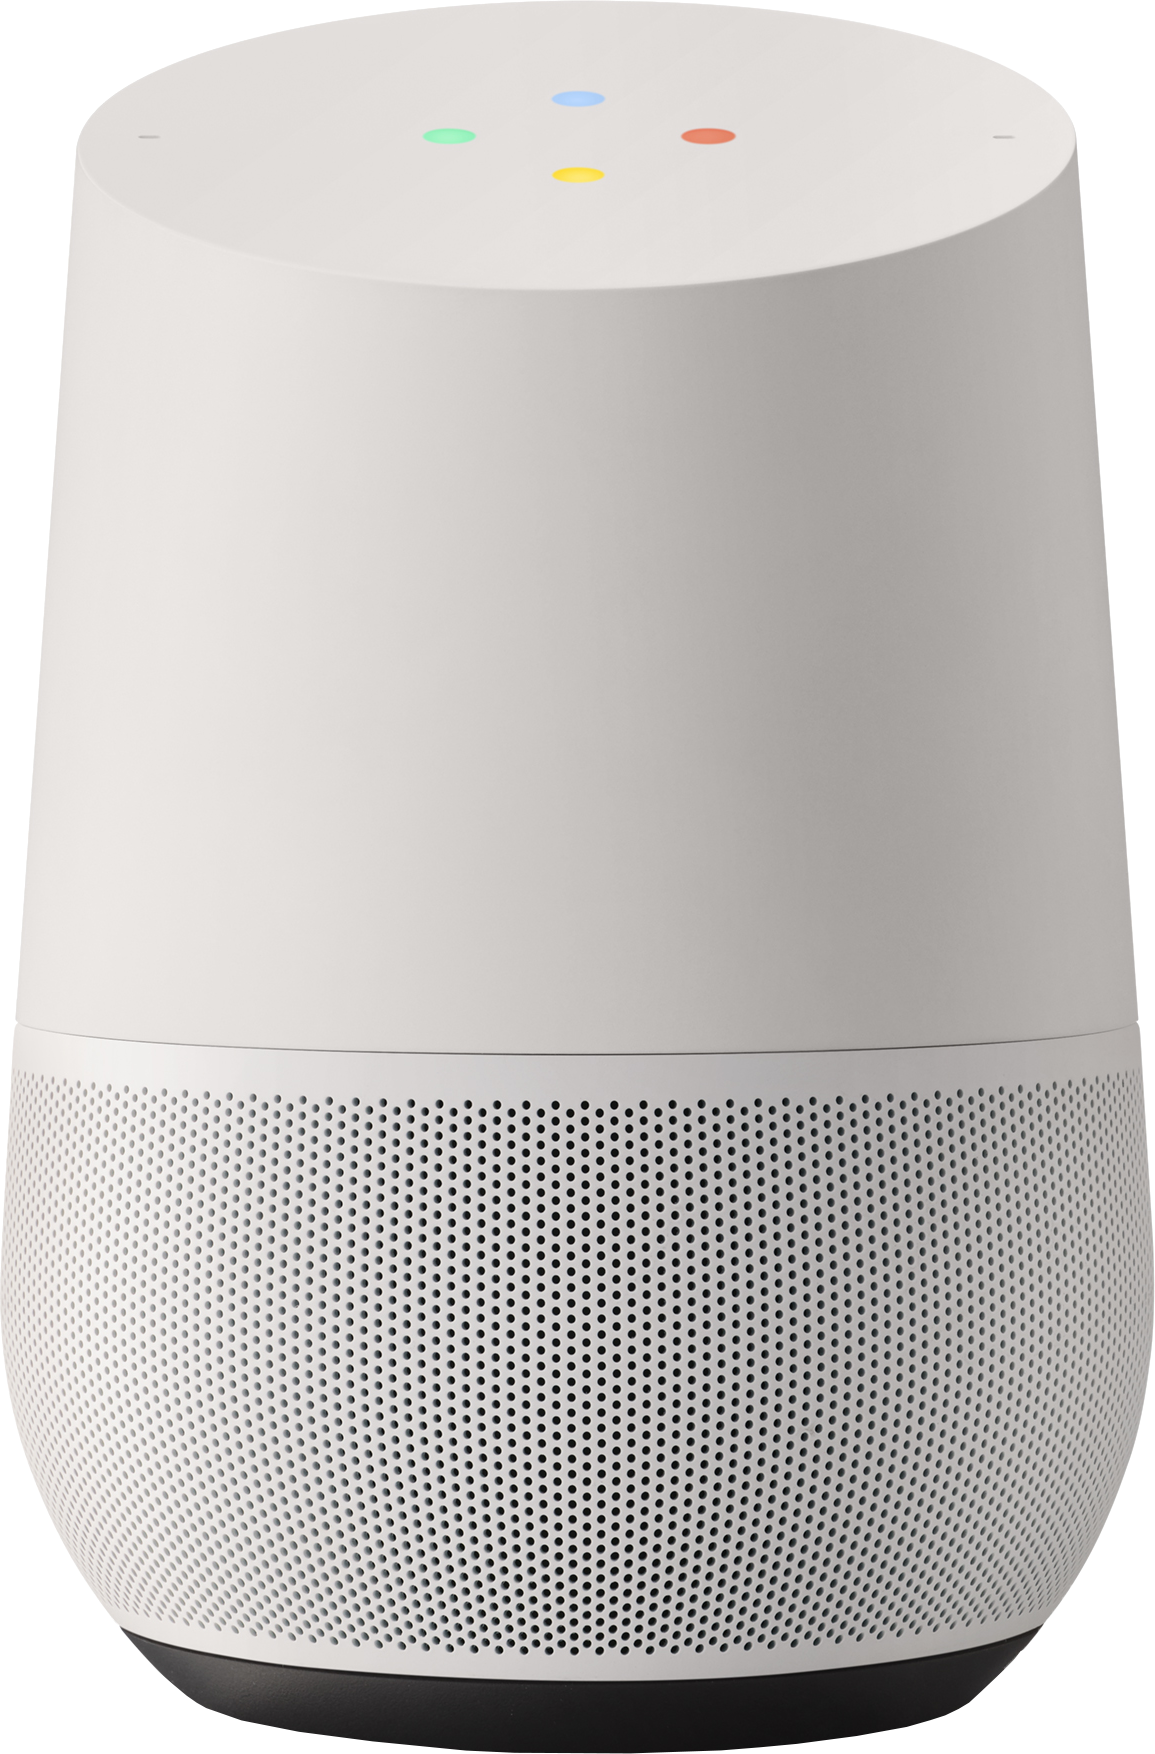 google-home-press-render-transparent-1.p